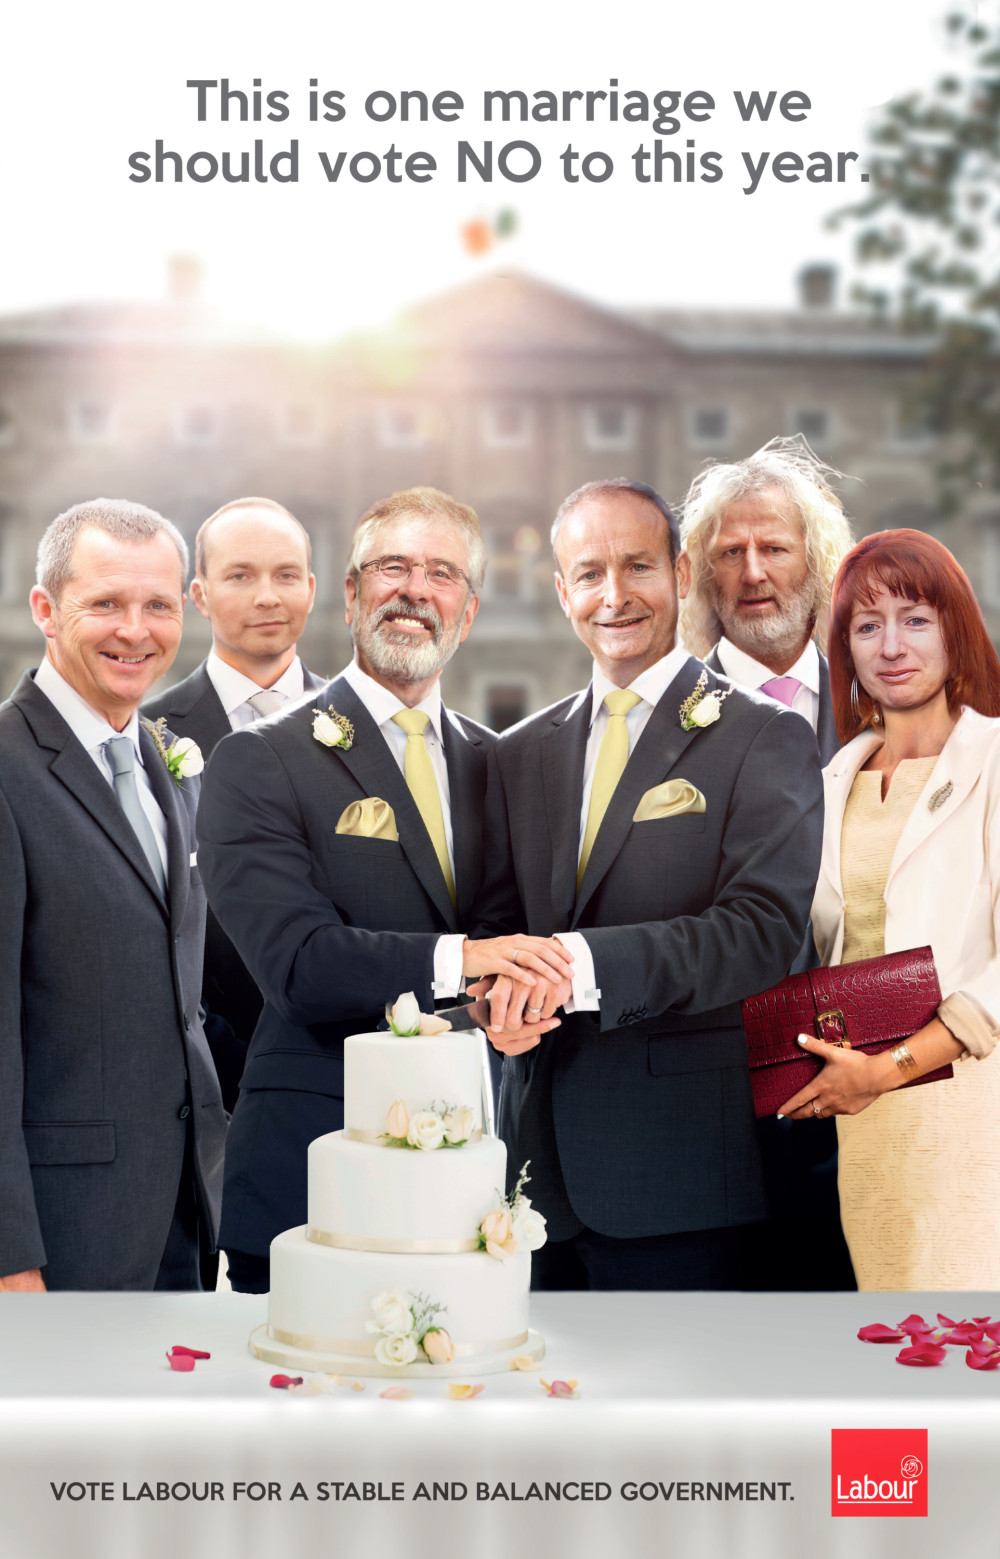 The poster has been derided for featuring potential coalition partners as a gay couple